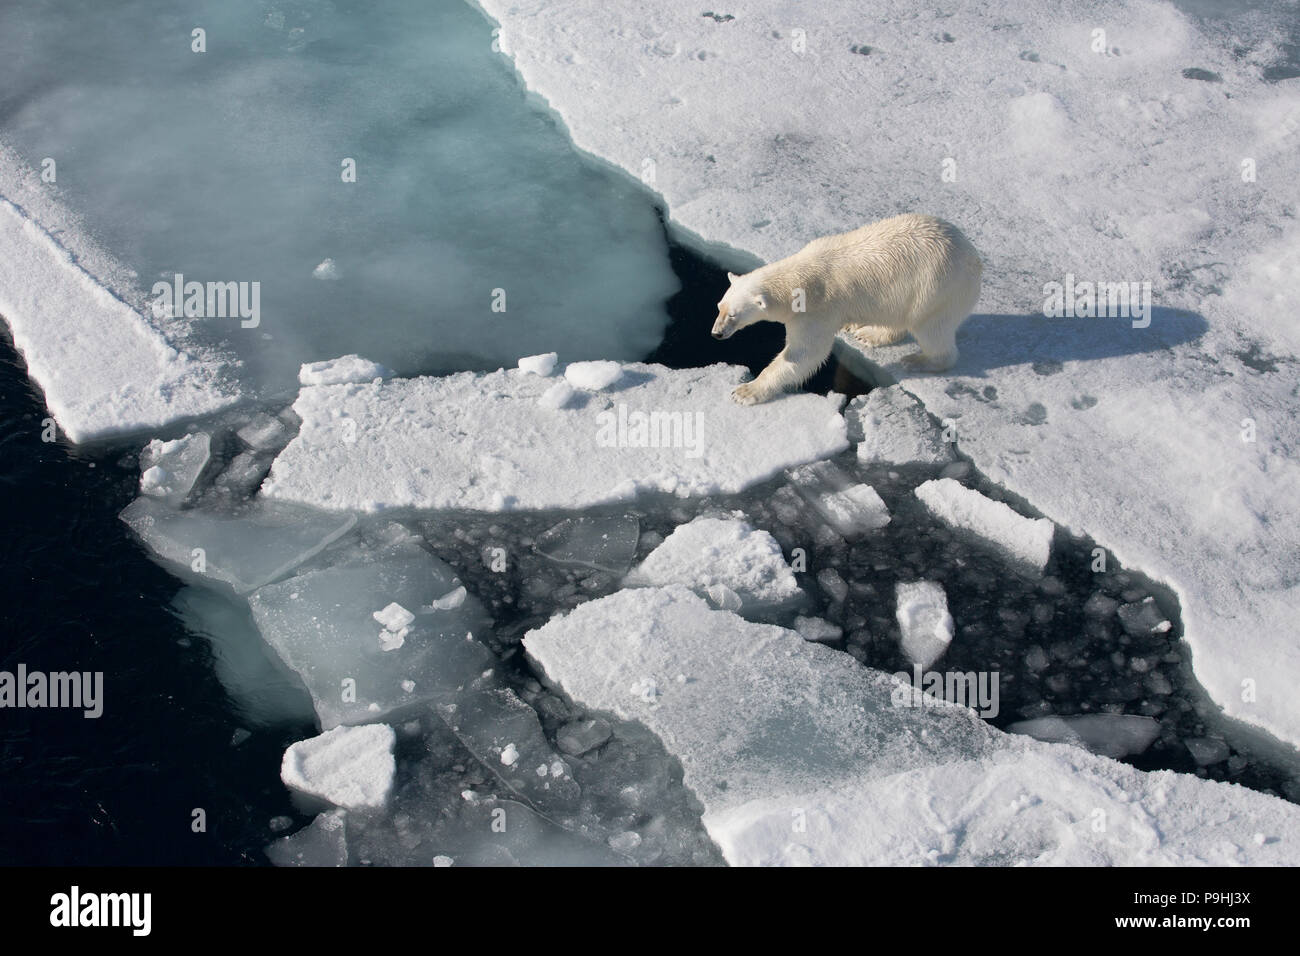 Polar Bear walking on sea ice - Stock Image